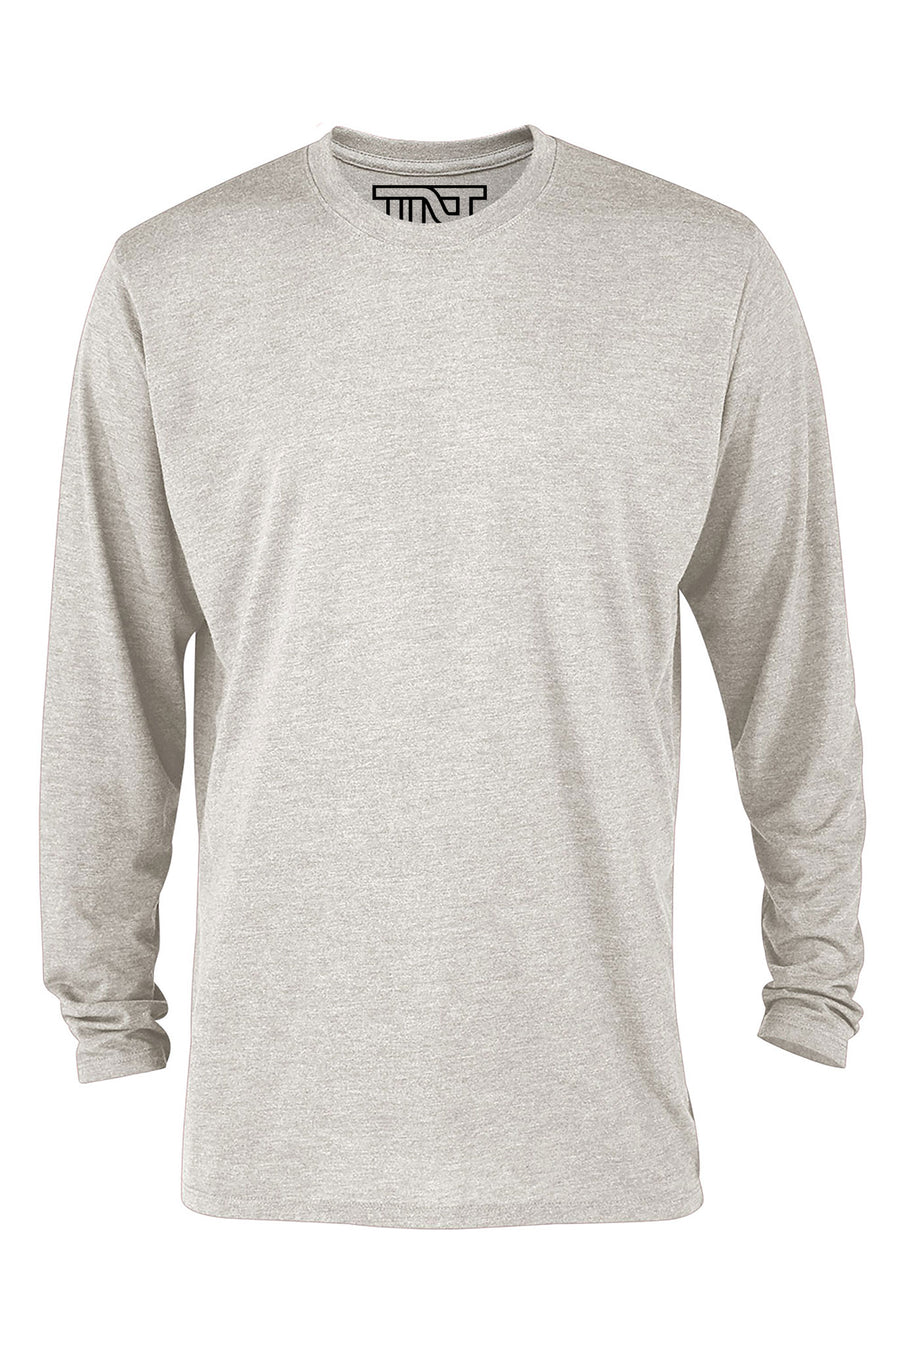 Heather Long Sleeve Tri-Blend T-Shirt - Oatmeal